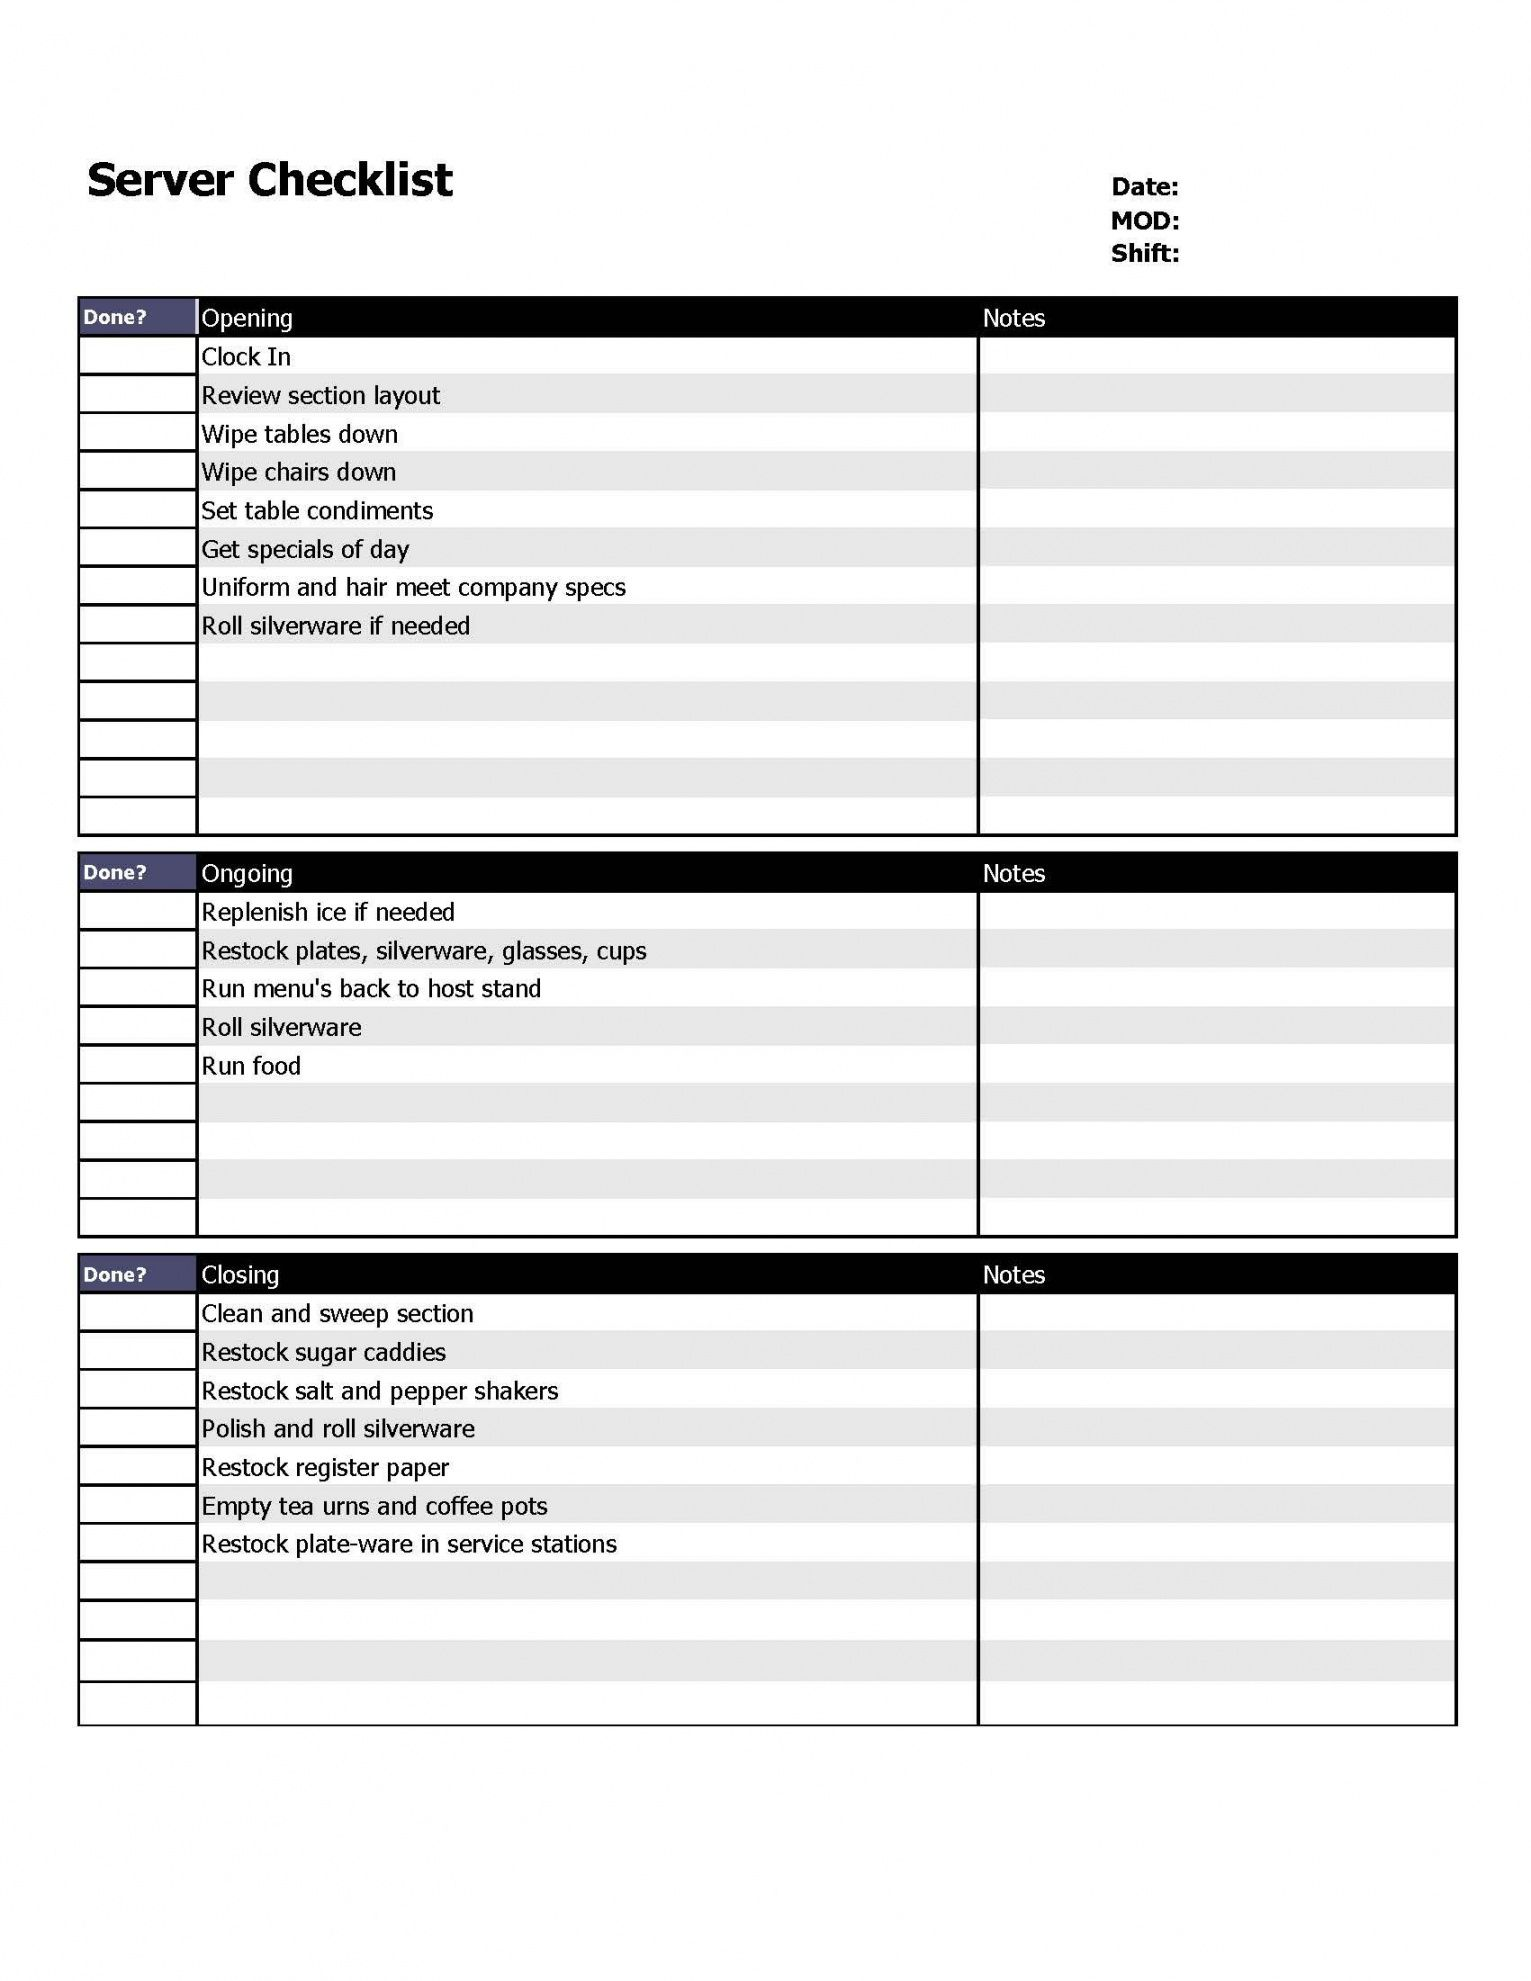 restaurant server checklist form  organizing  restaurant service shift checklist template samples